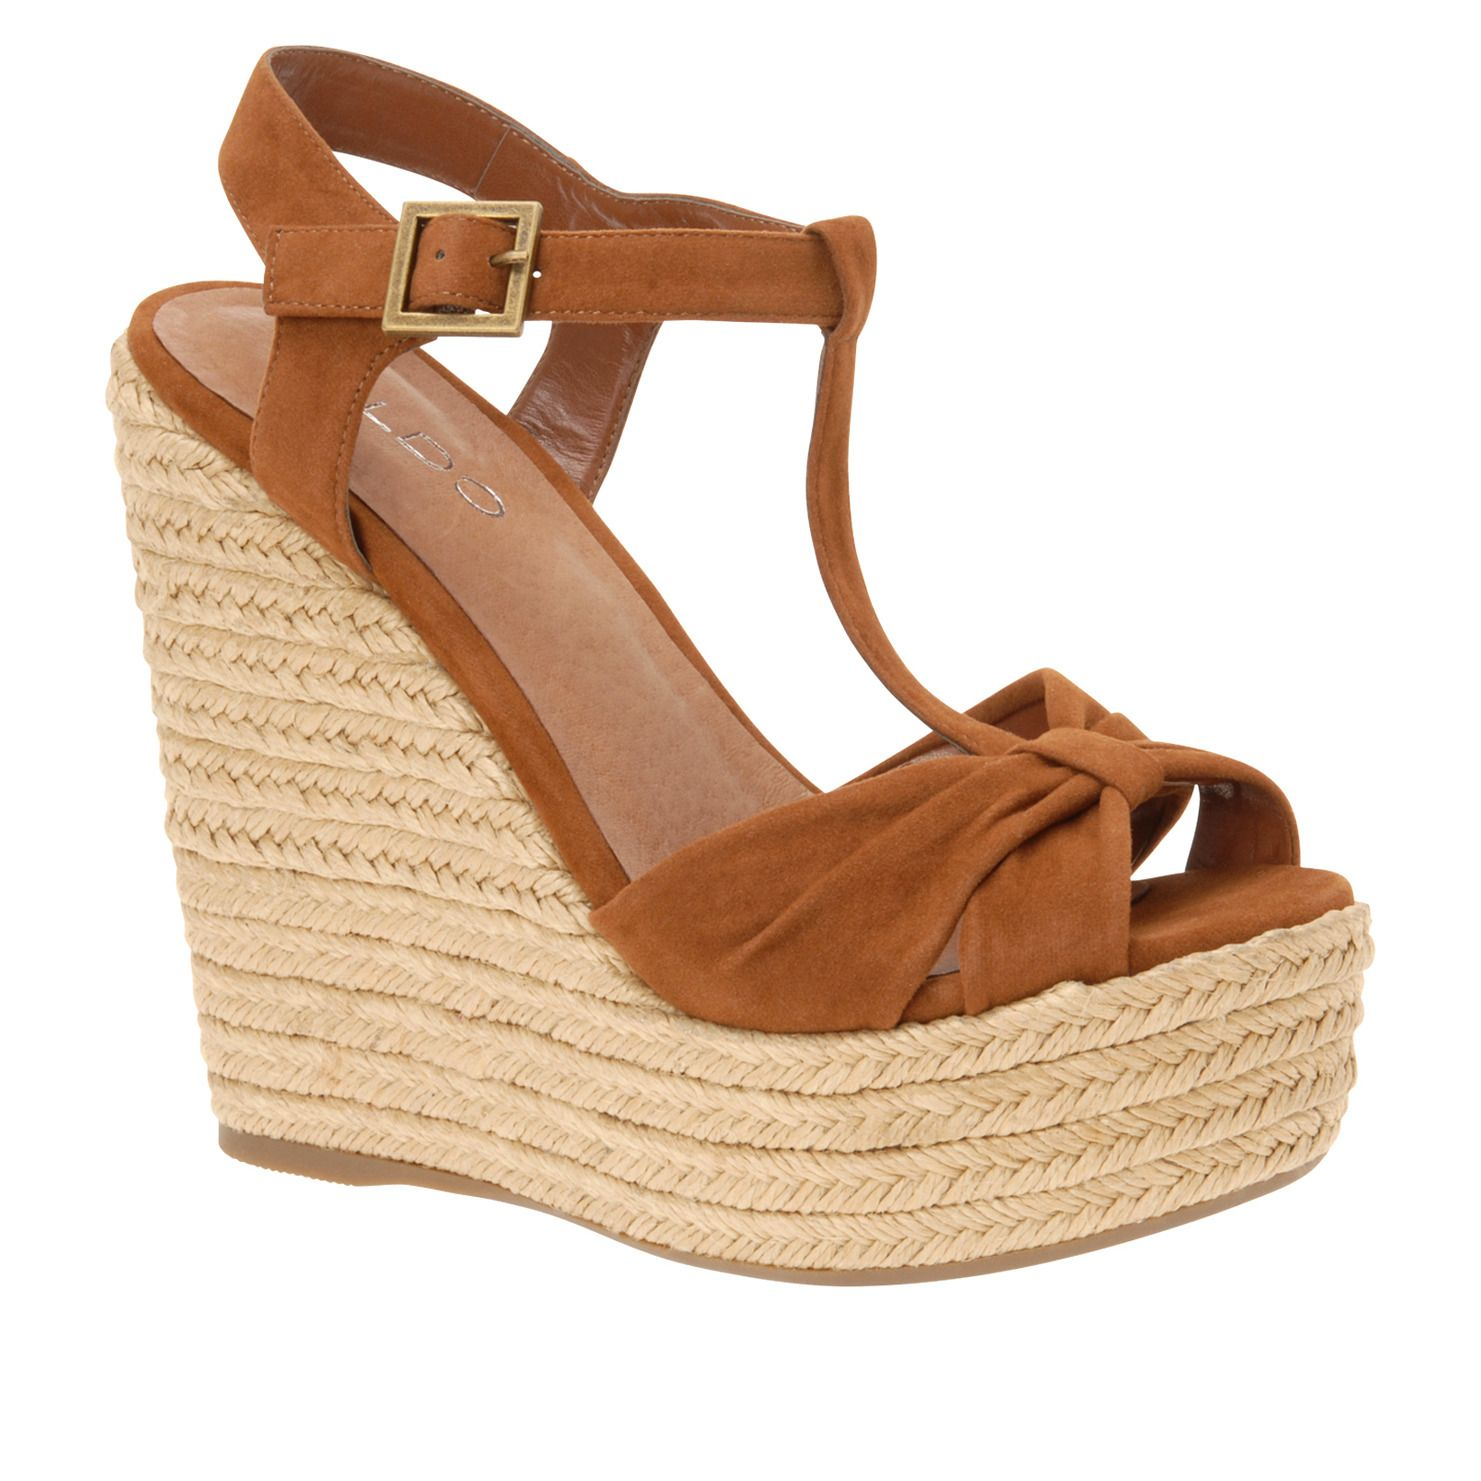 Womens Shoes Uk Wedges